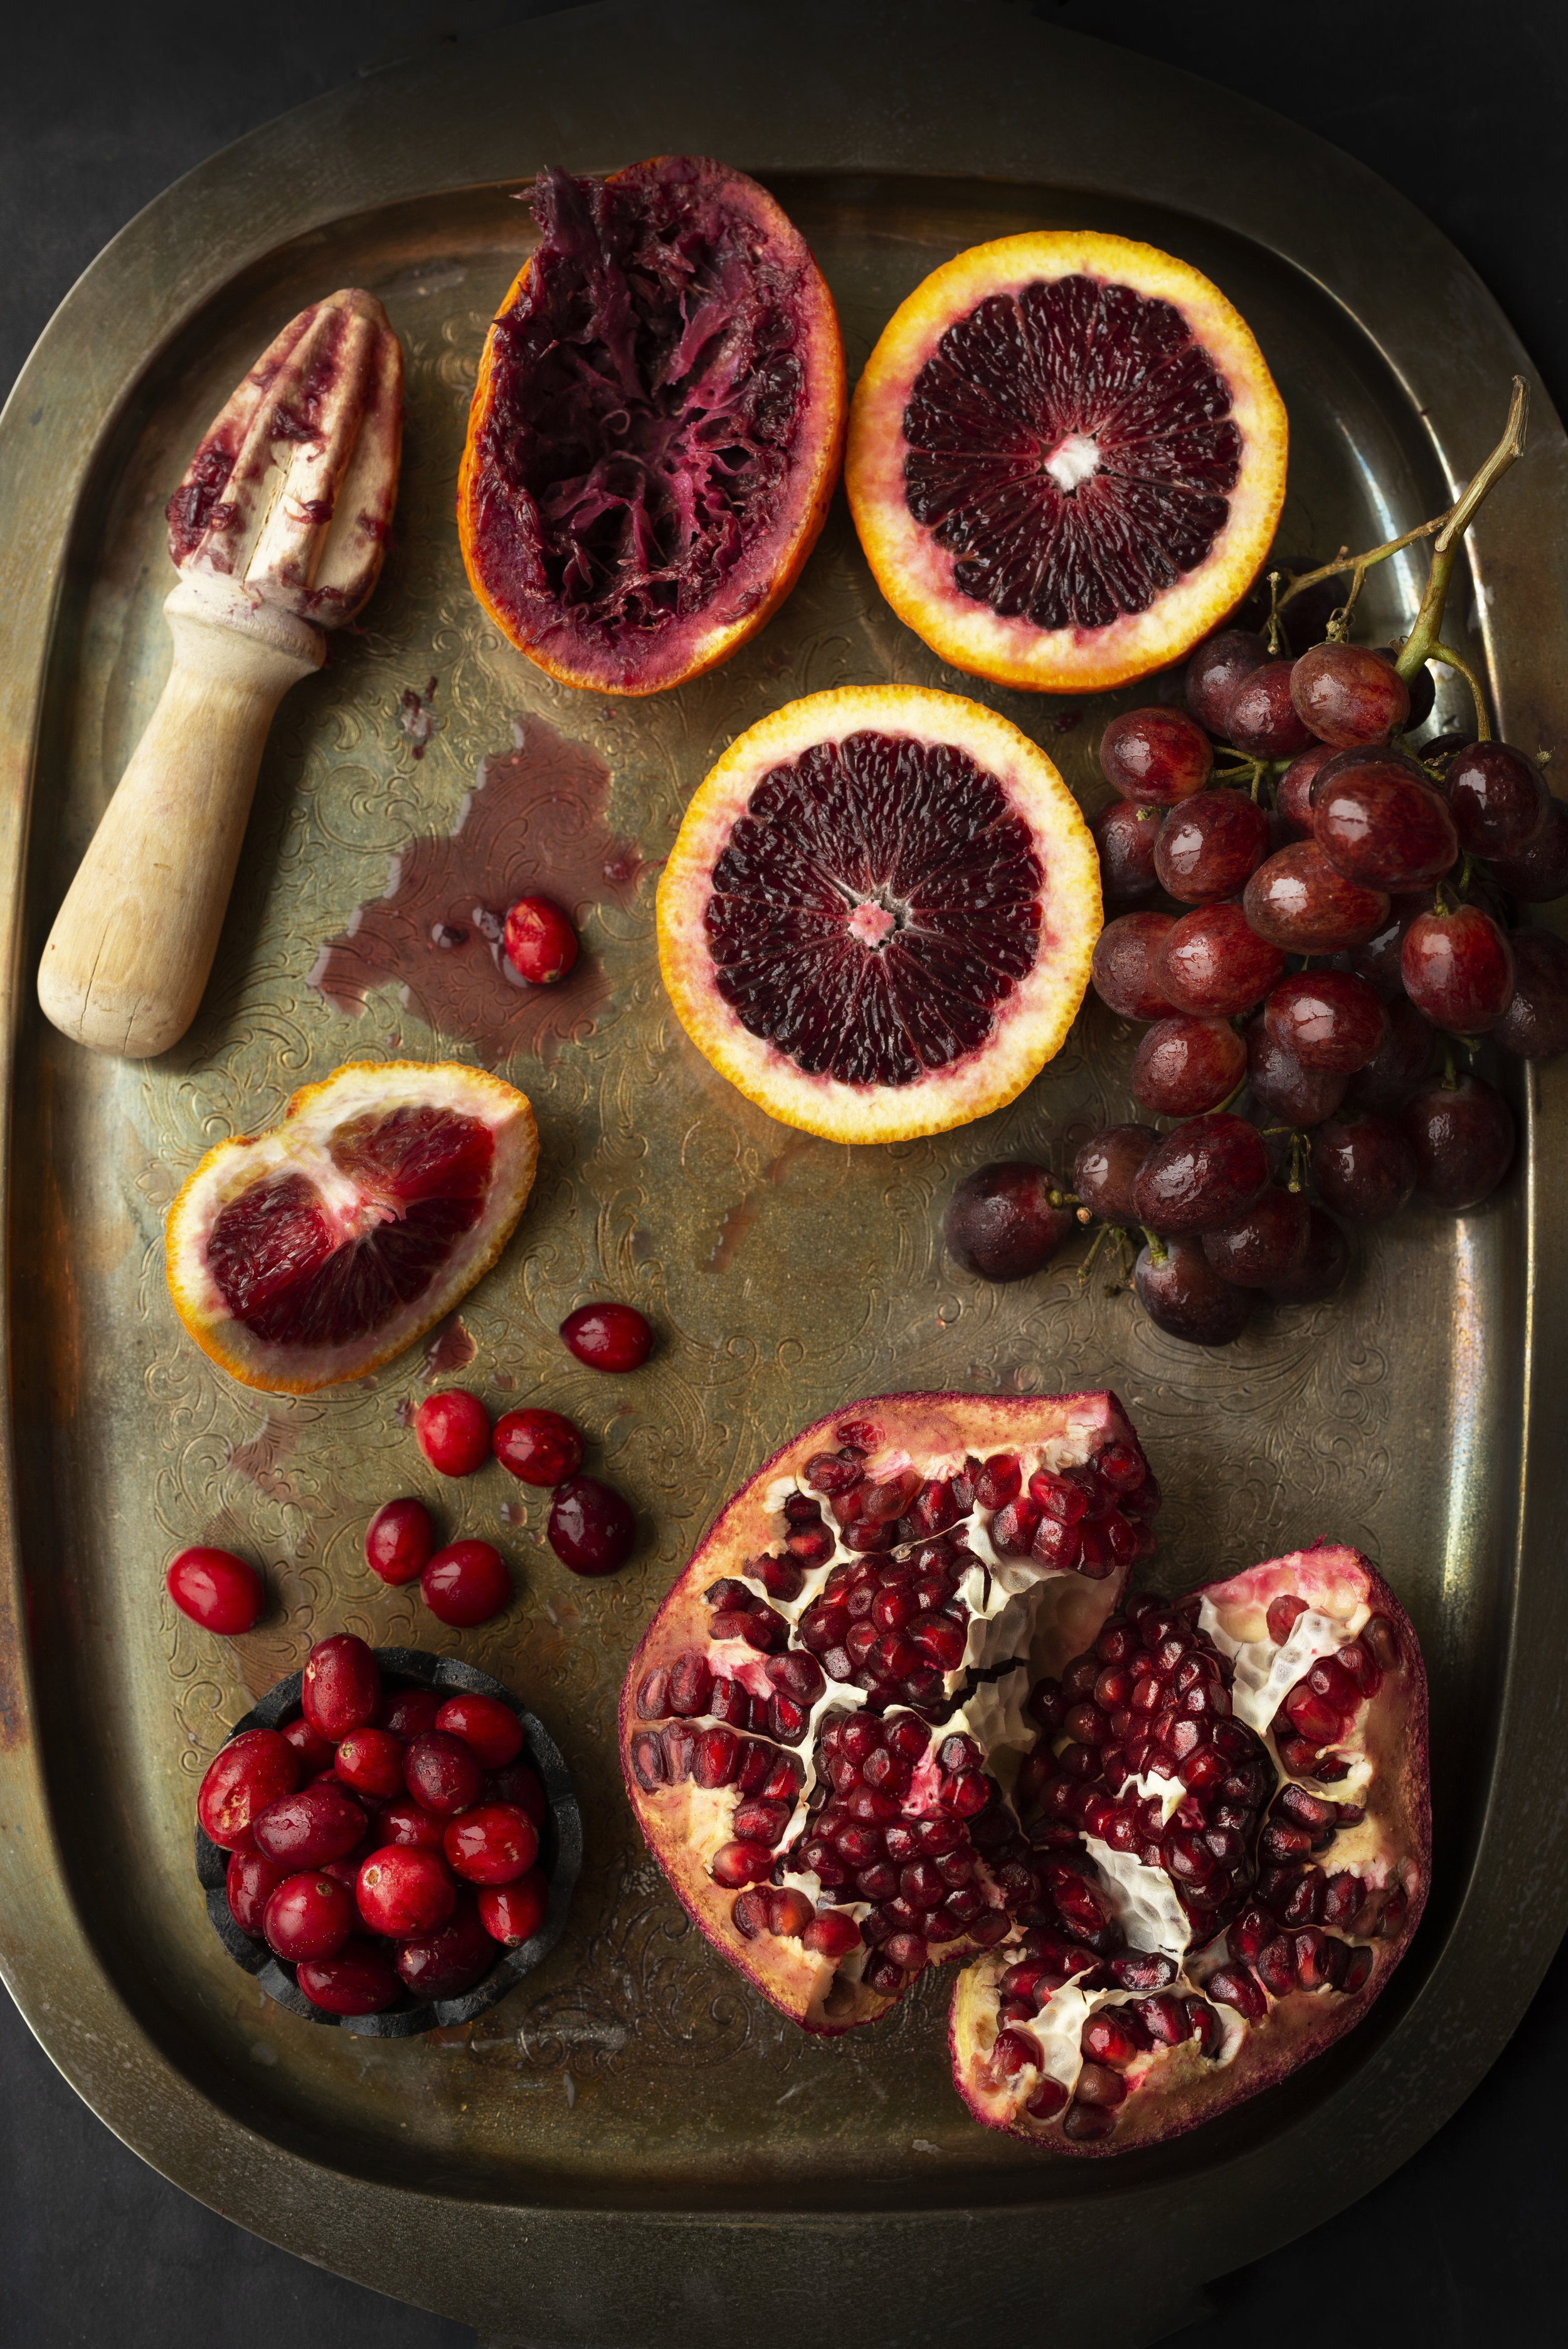 RedFruits-Grapes-Cranberry-Pomegranate-RedOranges-HR-SimiJois-2019.jpg